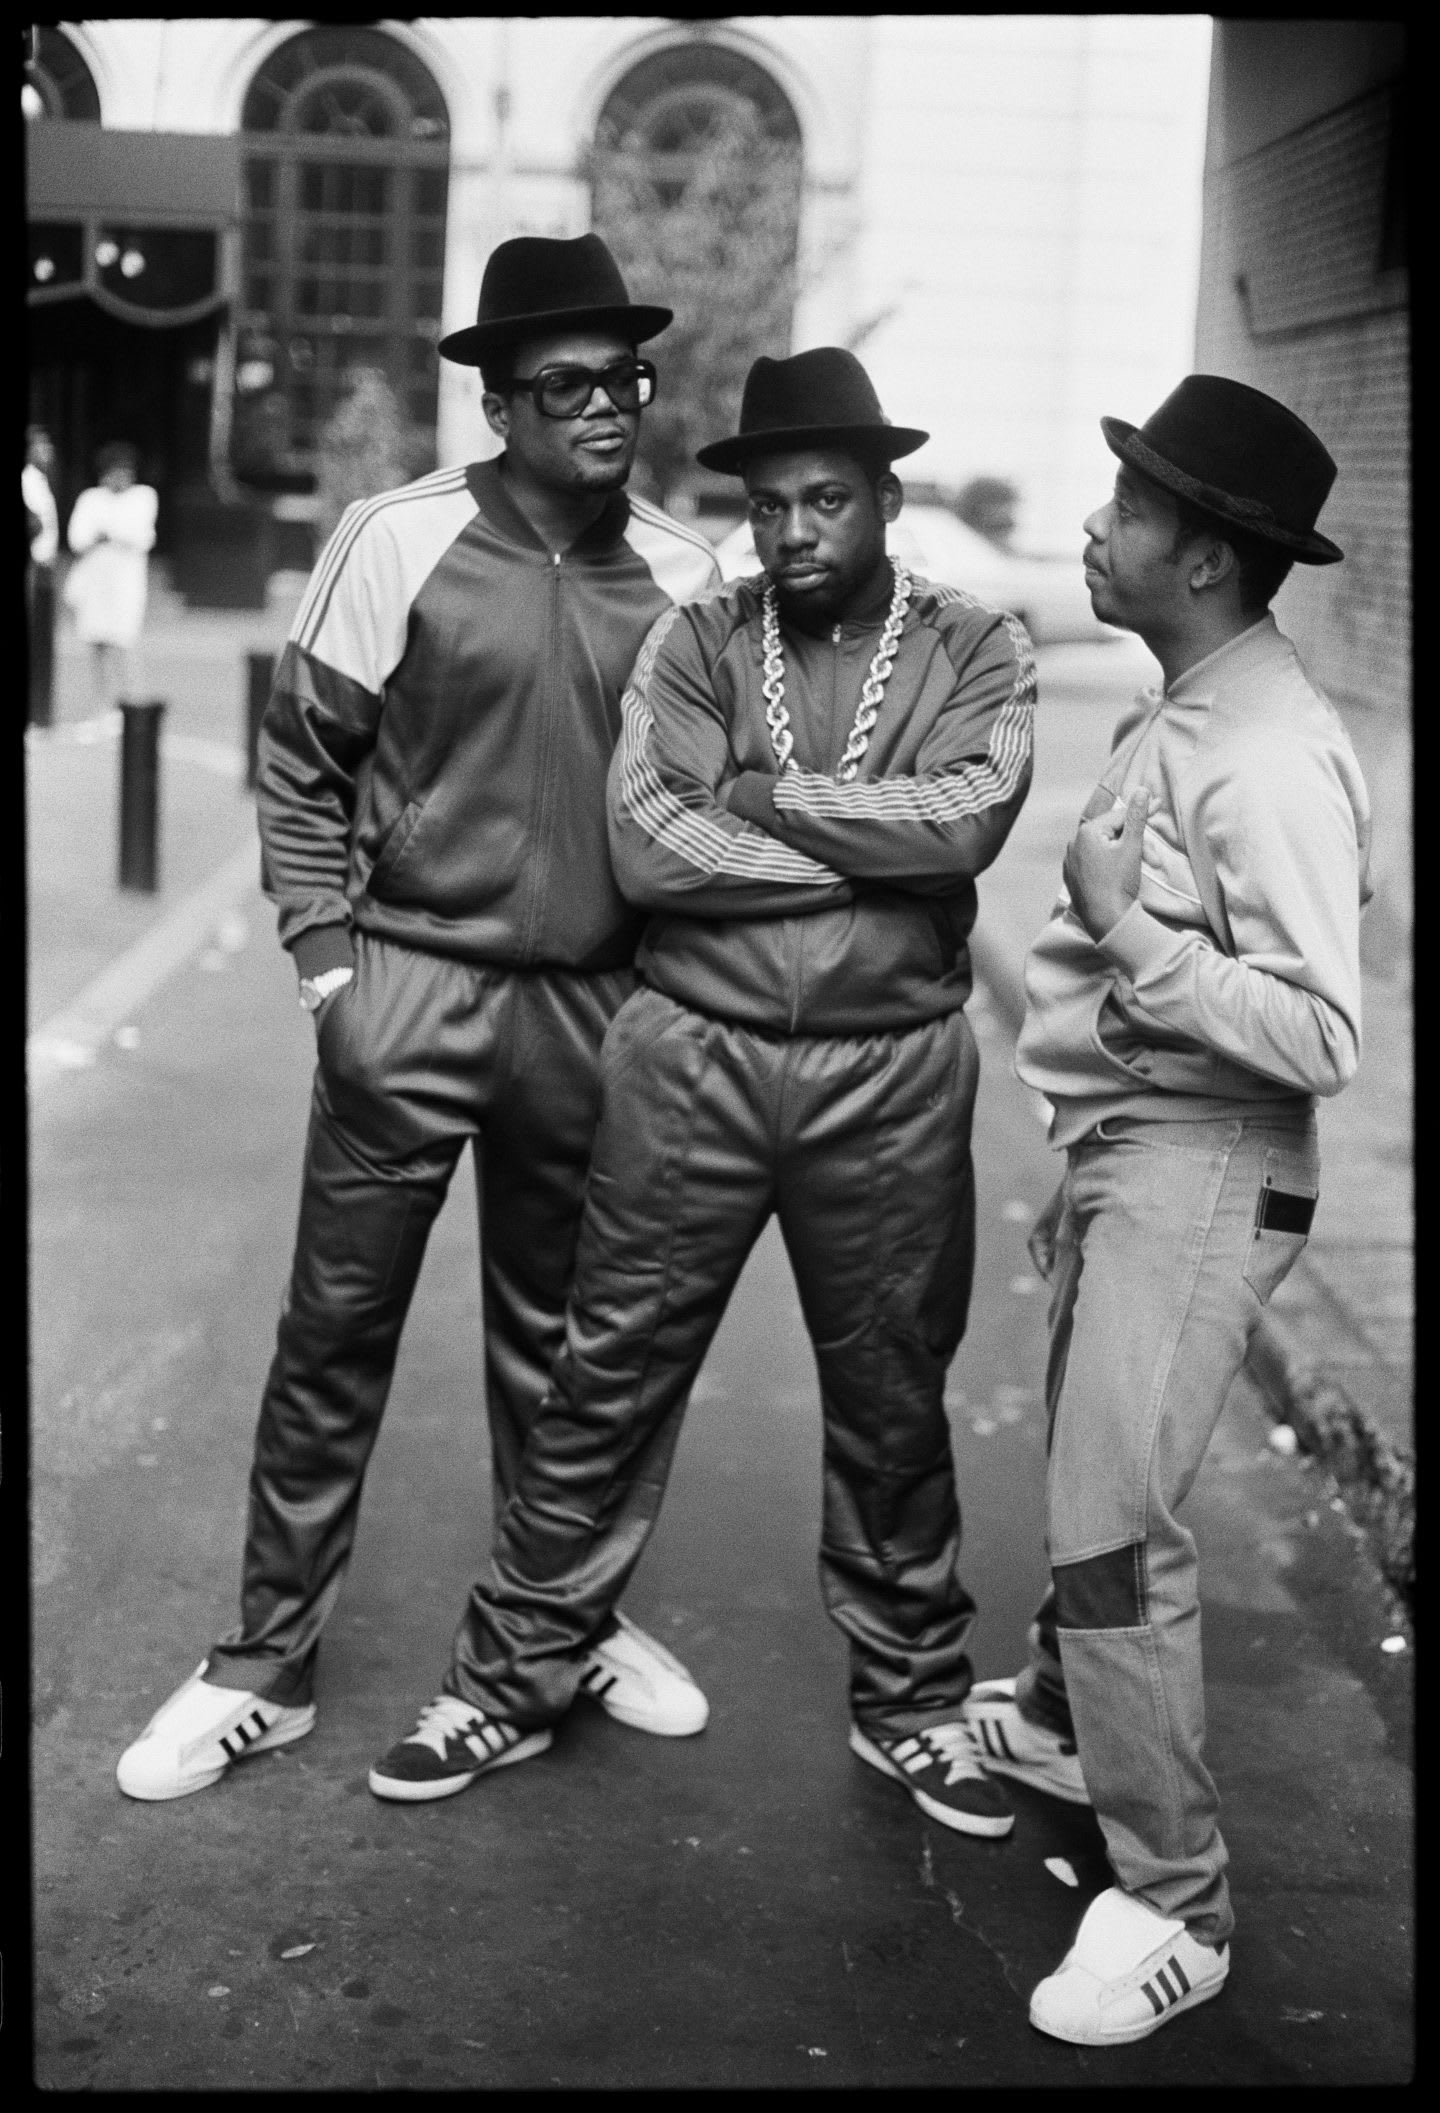 Black and White image of Run DMc in their adidas Superstar sneakers.